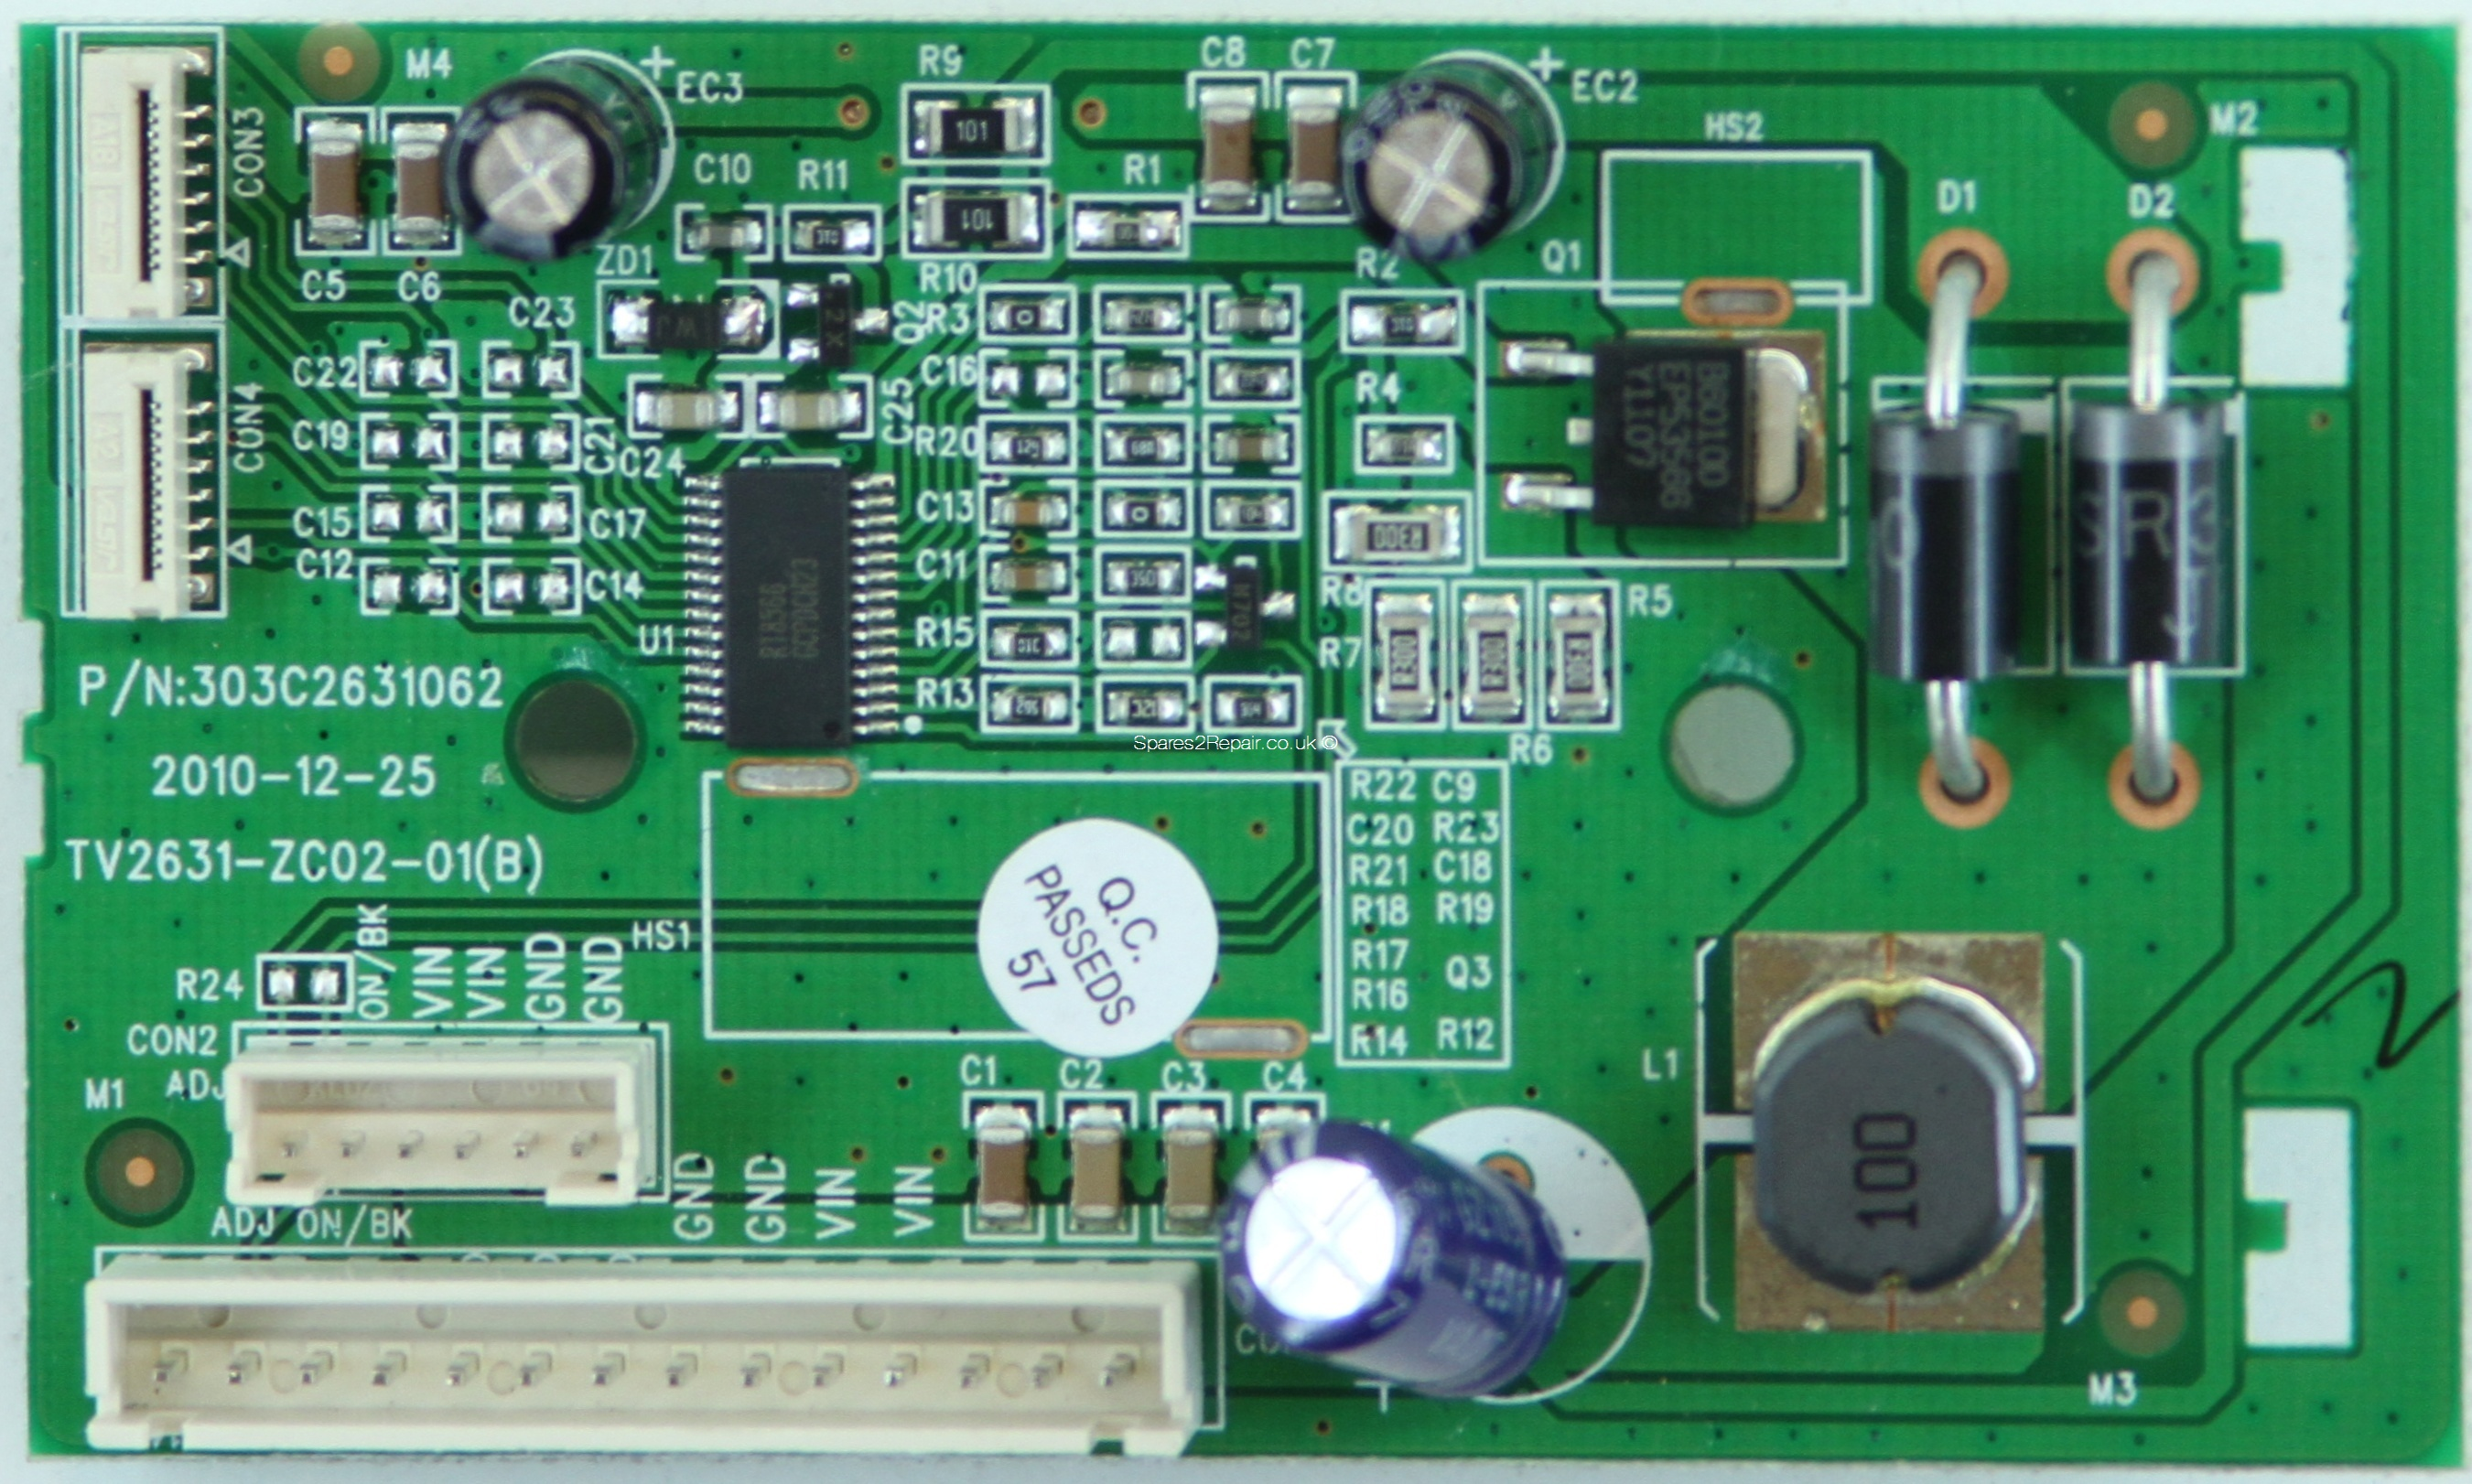 Haier LET26C430 - Board - TV2631-ZC02-01(B) - 303C2631062